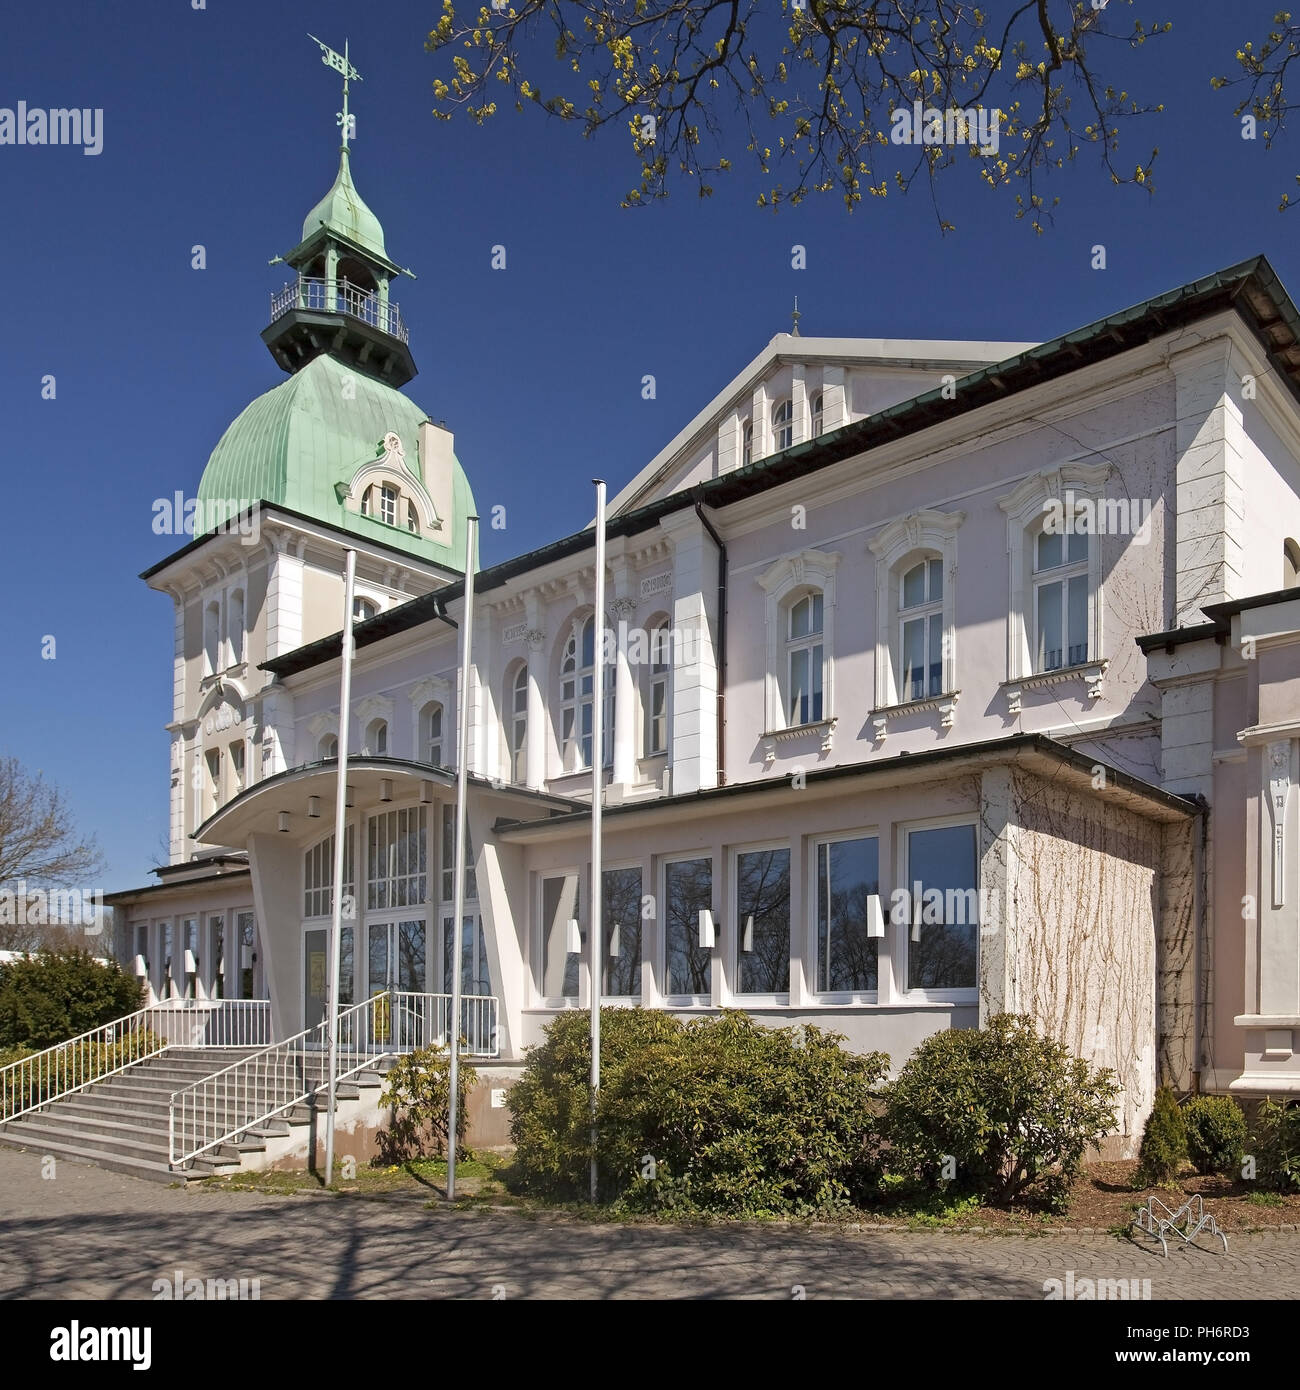 shooting club hall, Luedenscheid, Germany - Stock Image